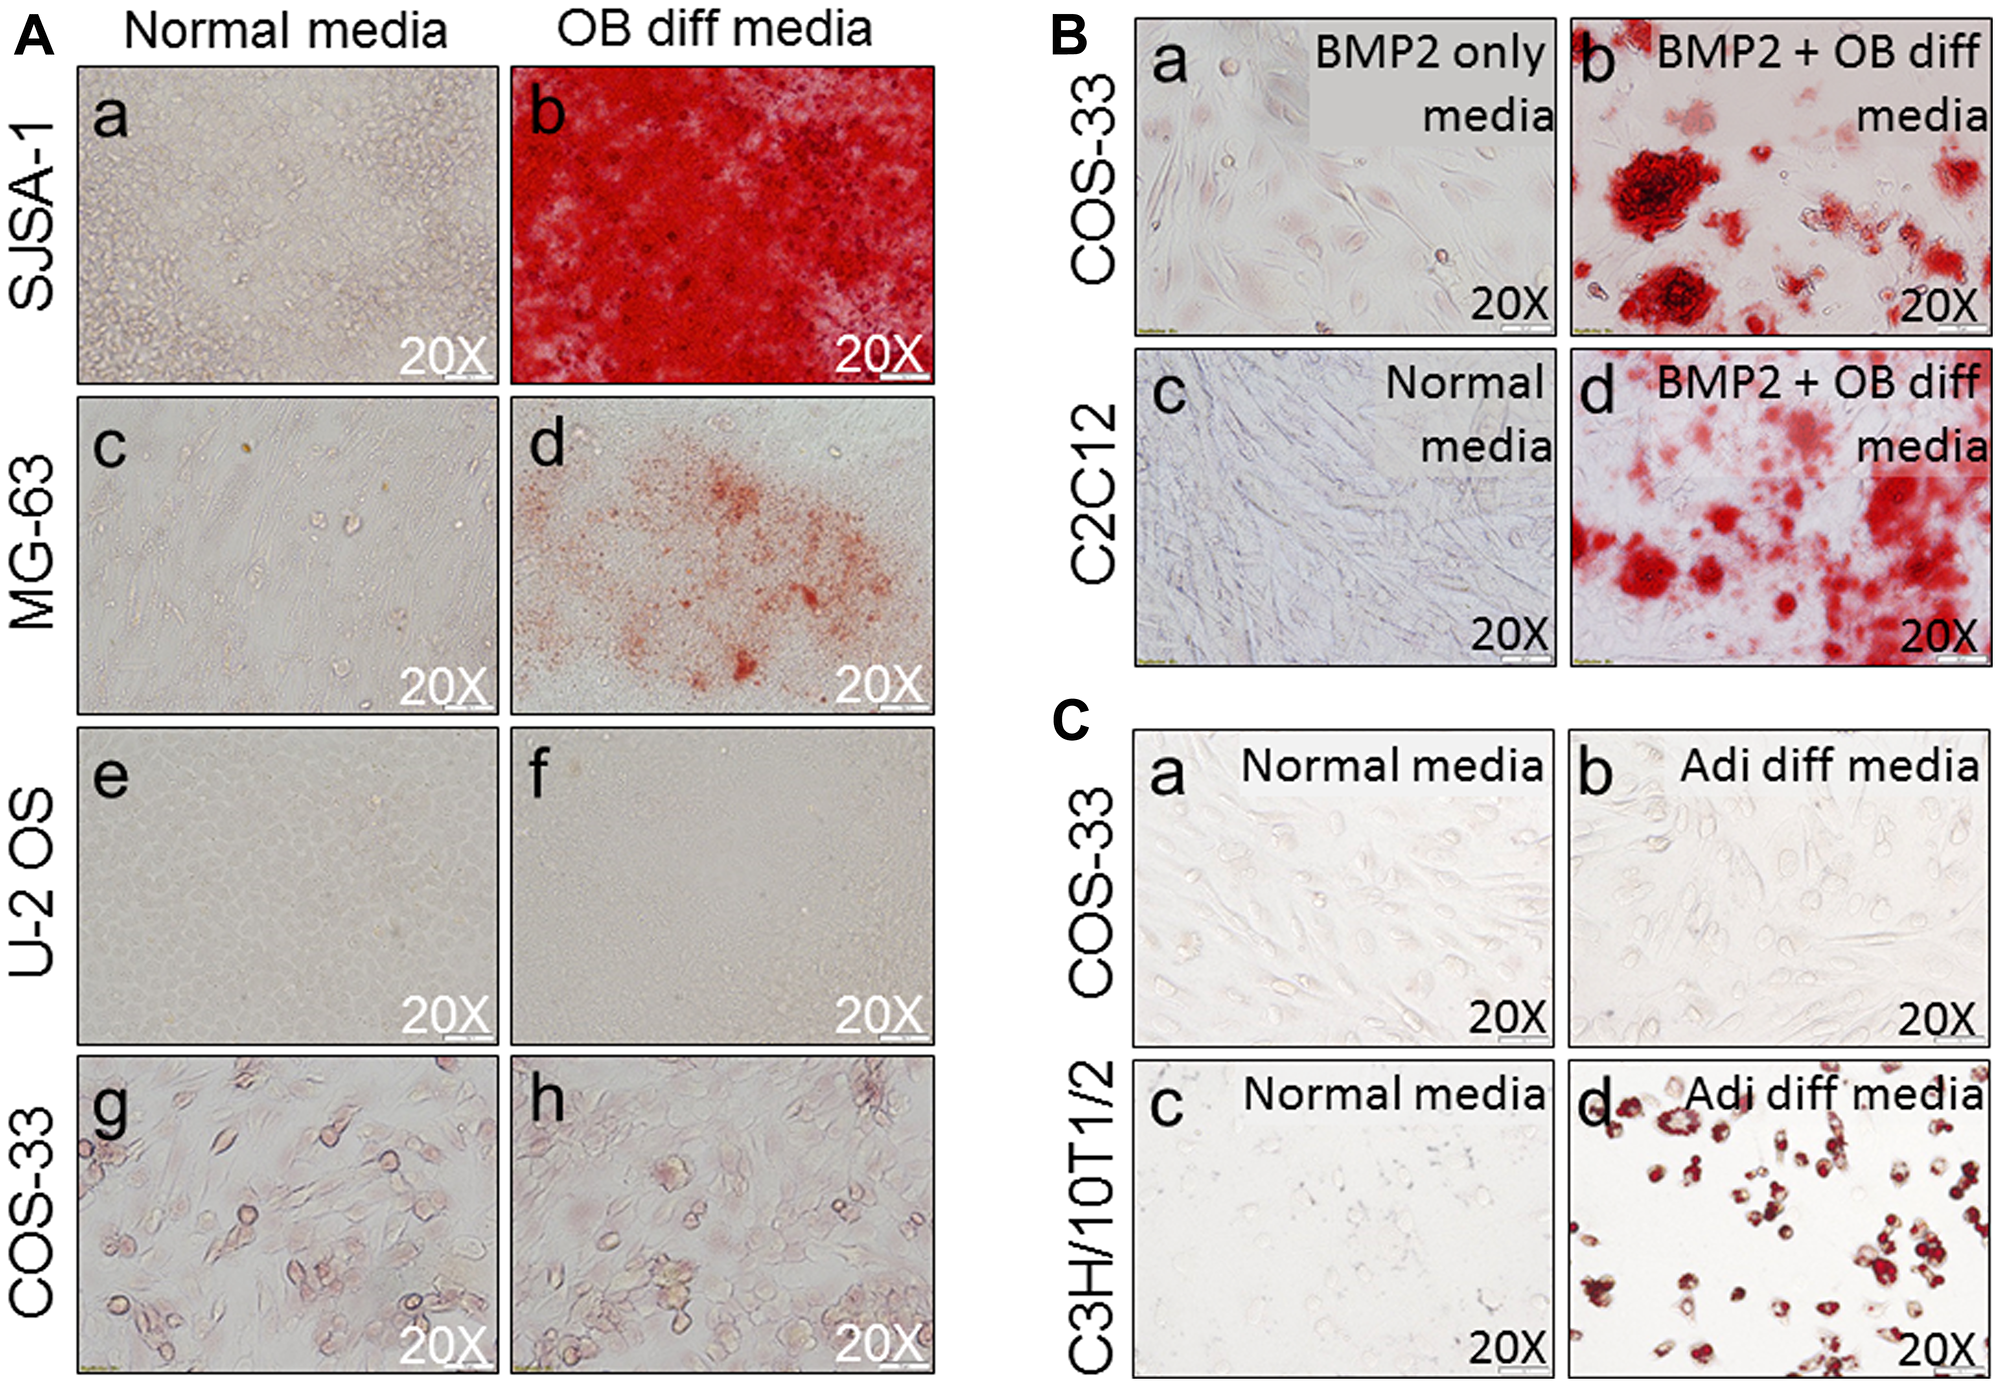 Functional characterization of the cells by osteogenic and adipocyte differentiation assays.